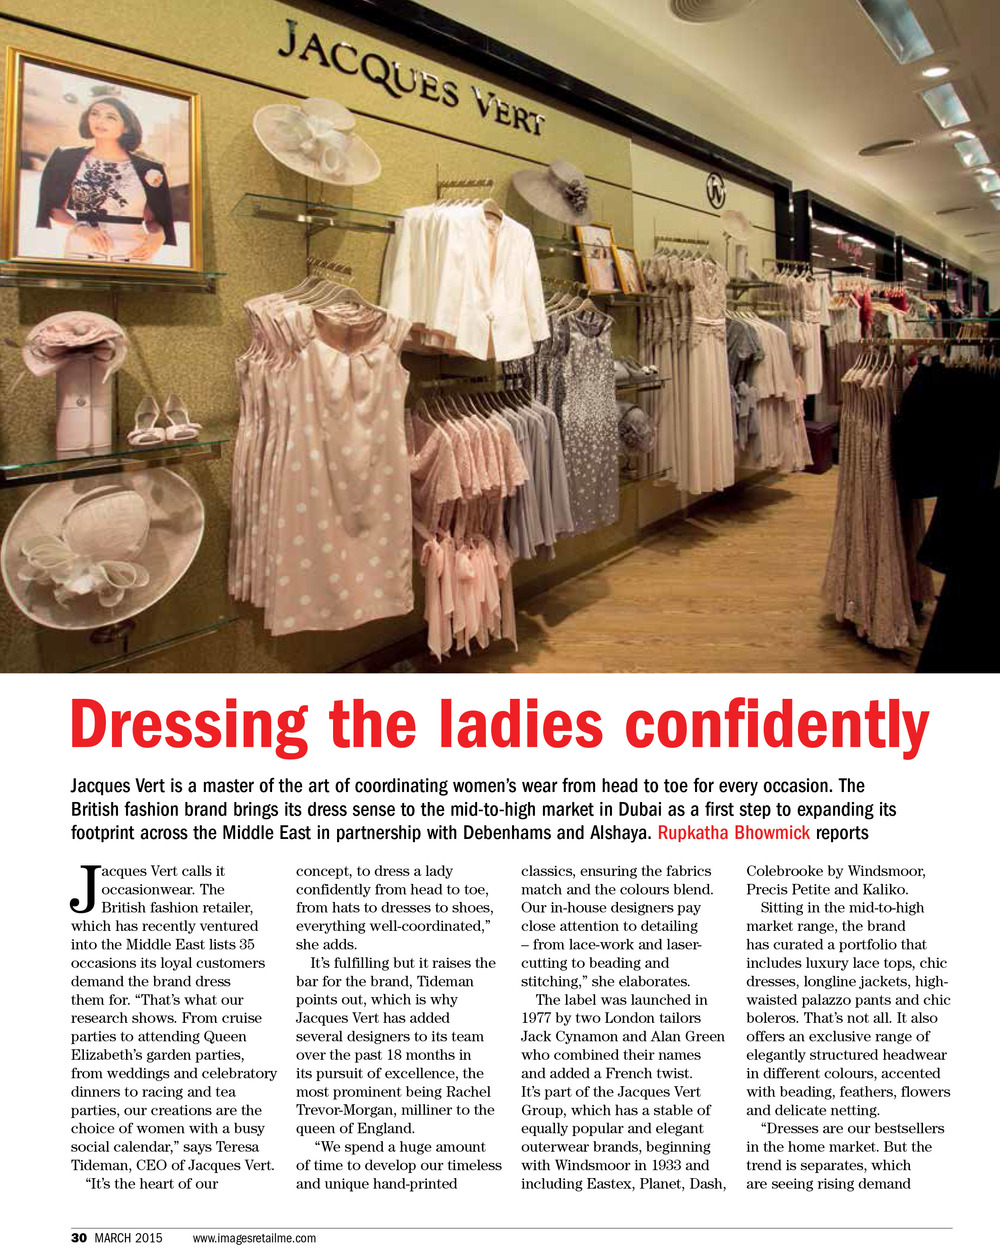 Dressing-the-ladies-confidently,-Images-RetailME,-March-2015-1.jpg